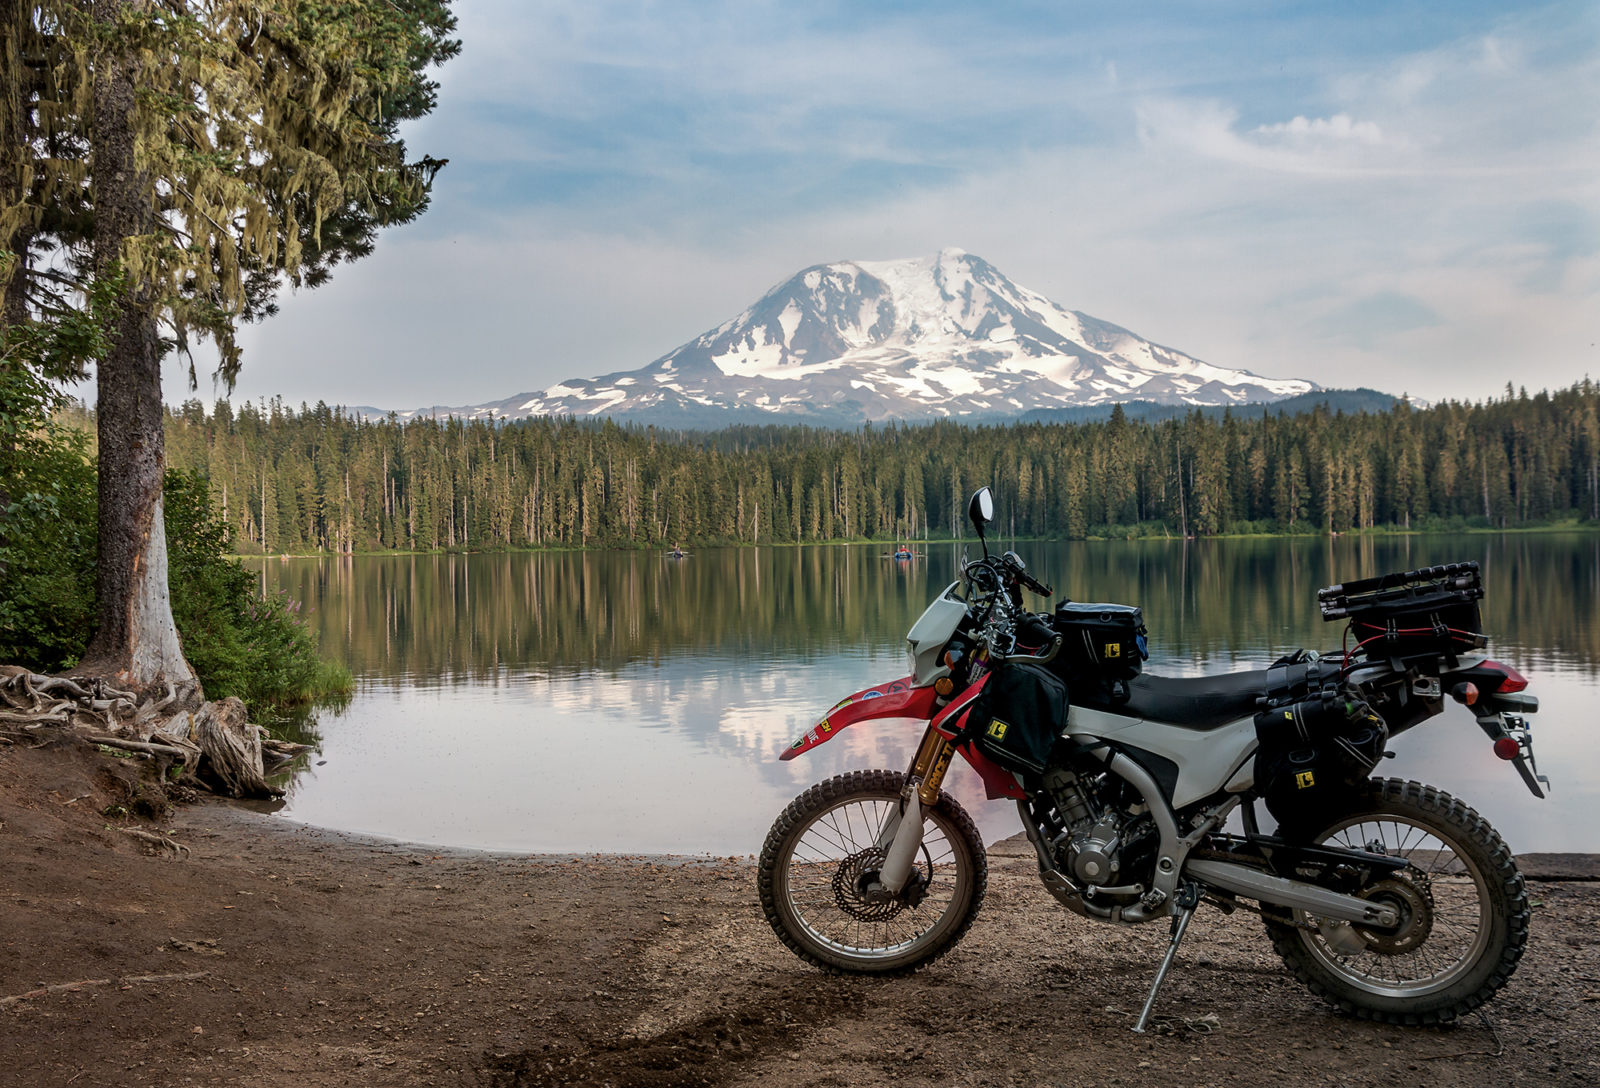 Tahklakh Lake & Mt. Adams ADV